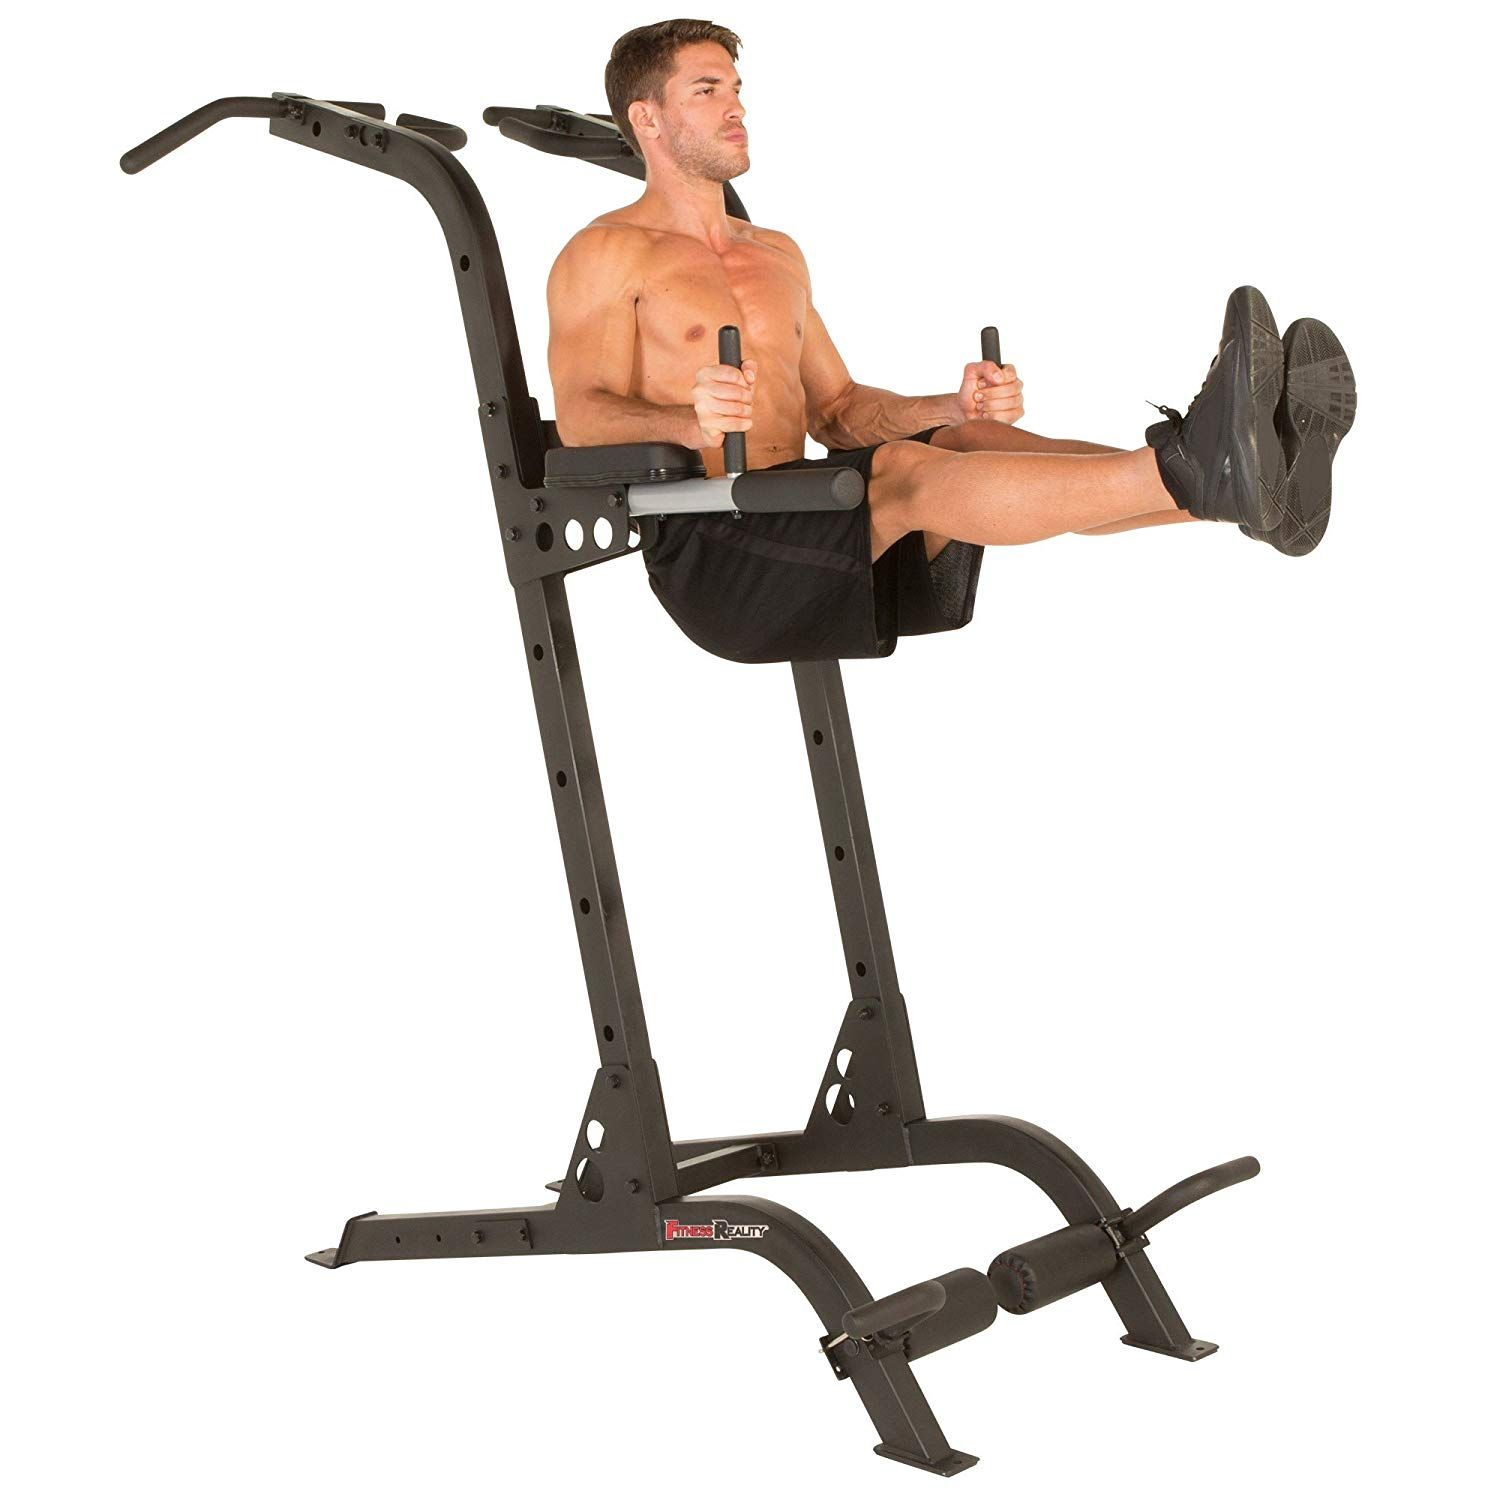 fitness reality x-class high-capacity multi function power tower